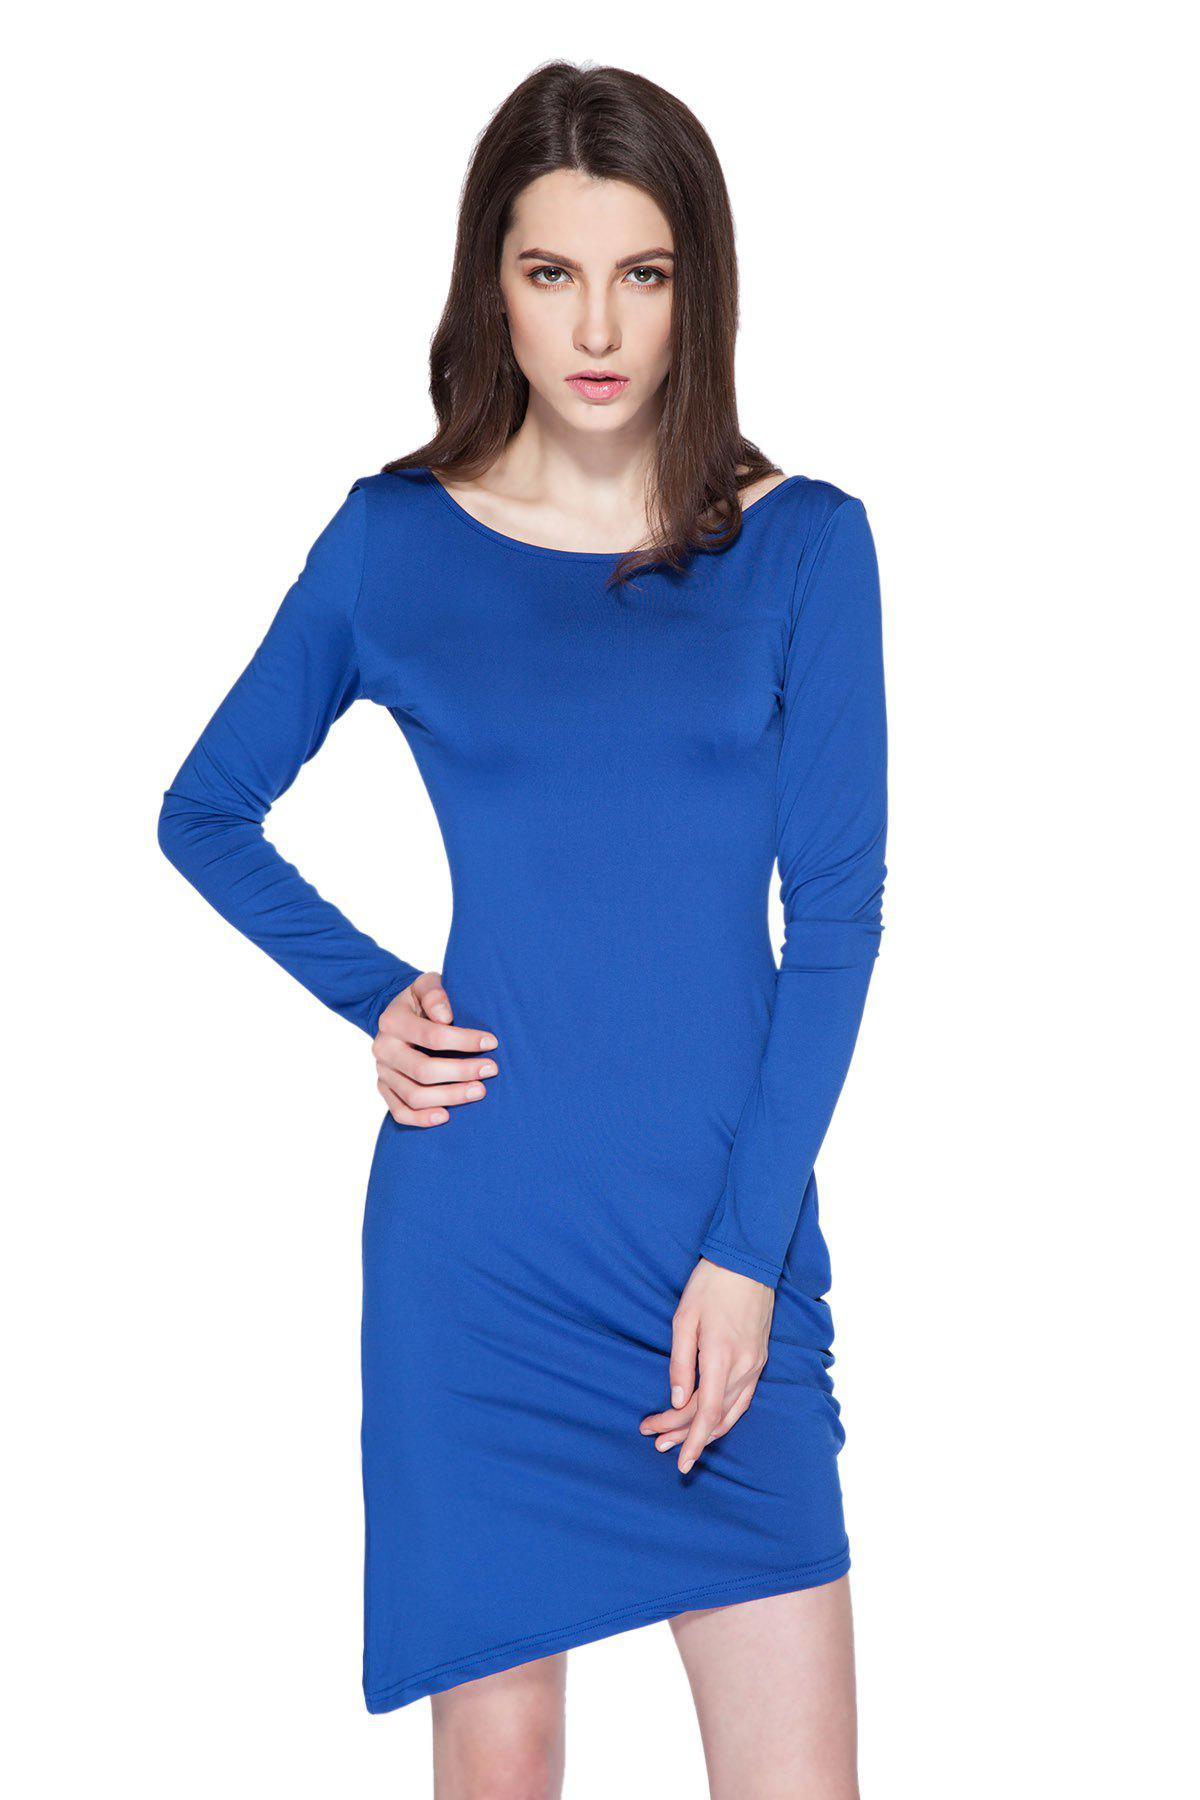 Simple Style Boat Neck Long Sleeve Solid Color Backless Women's Bodycon Dress - SAPPHIRE BLUE L